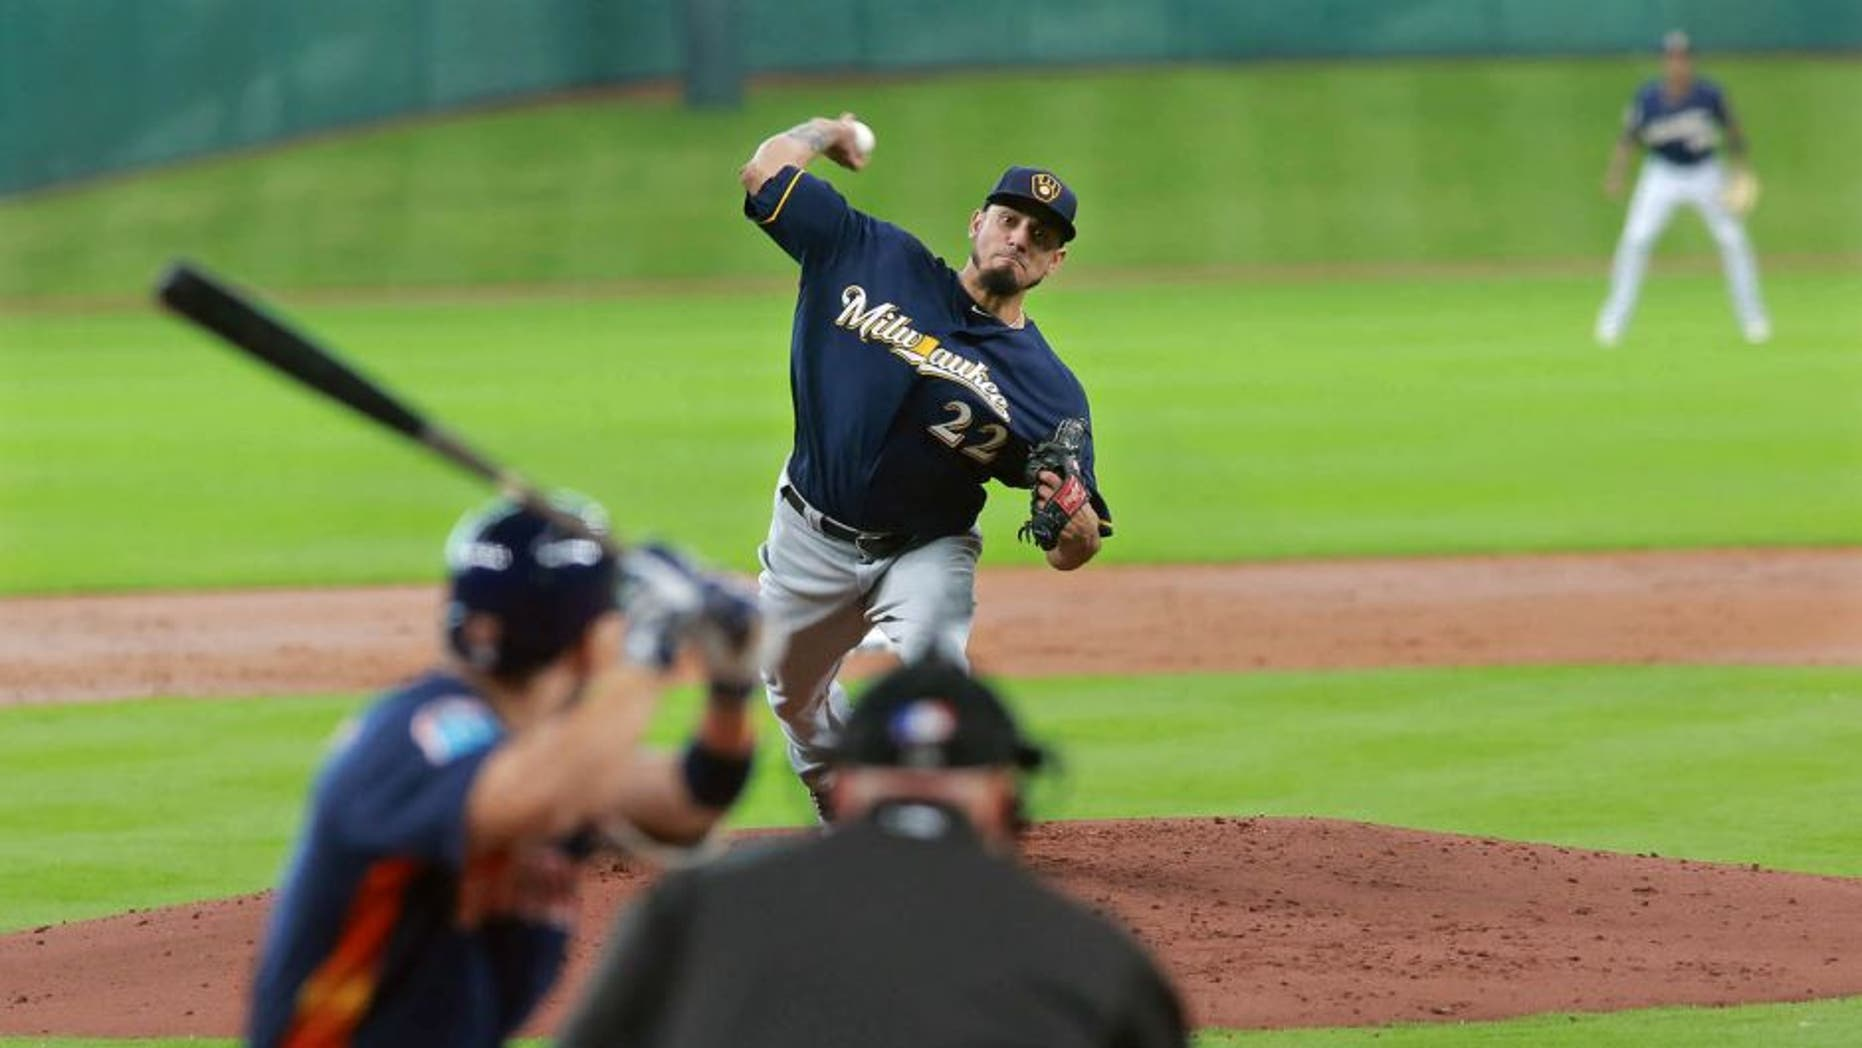 Milwaukee Brewers pitcher Matt Garza delivers a pitch to Houston Astro' Jose Altuve in the first inning of an exhibition baseball game Friday, April 1, 2016 in Houston. (AP Photo/Richard Carson)